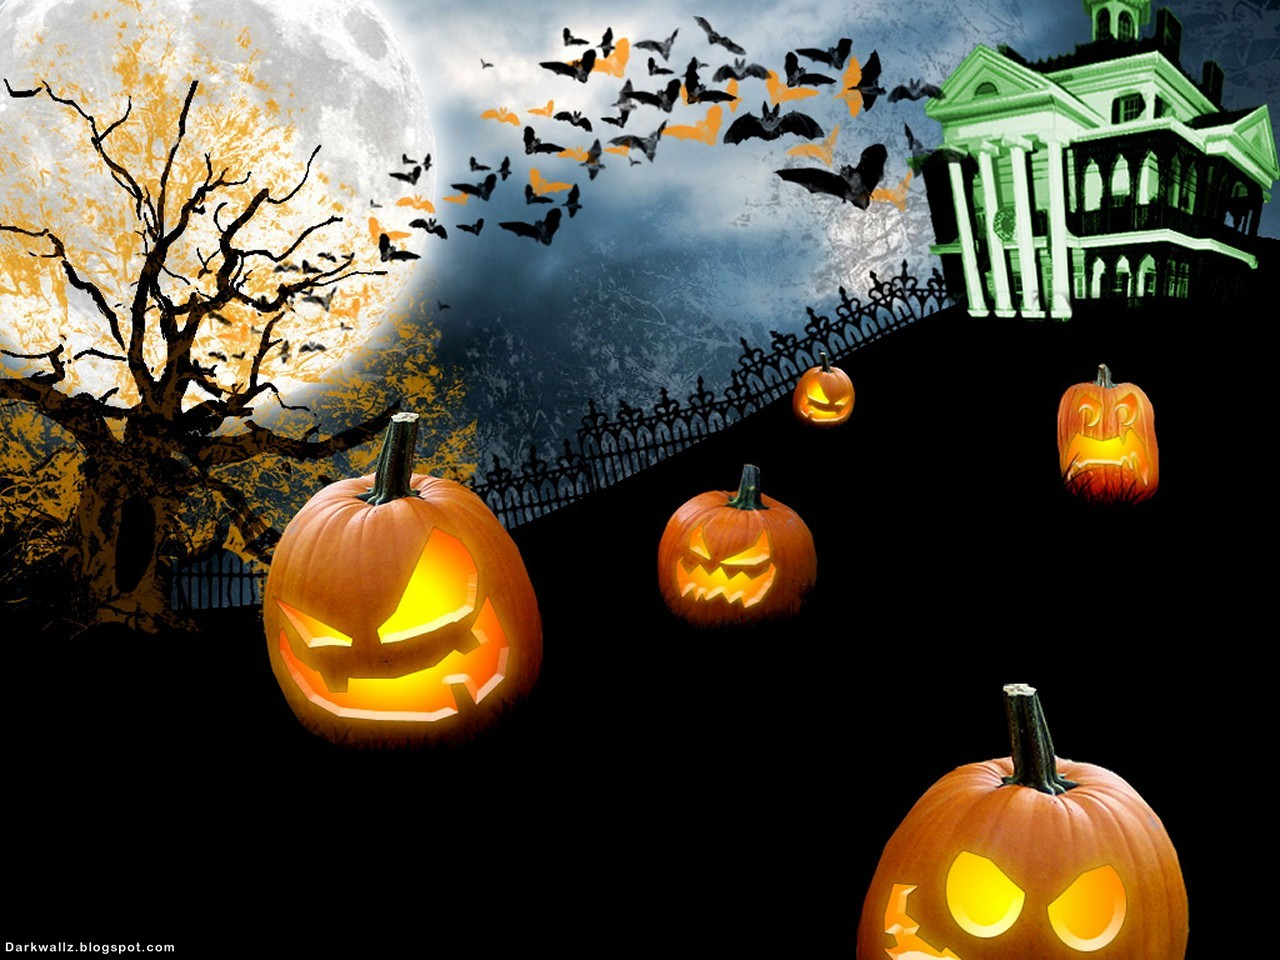 Halloween Wallpapers 123 | Dark Wallpaper Download